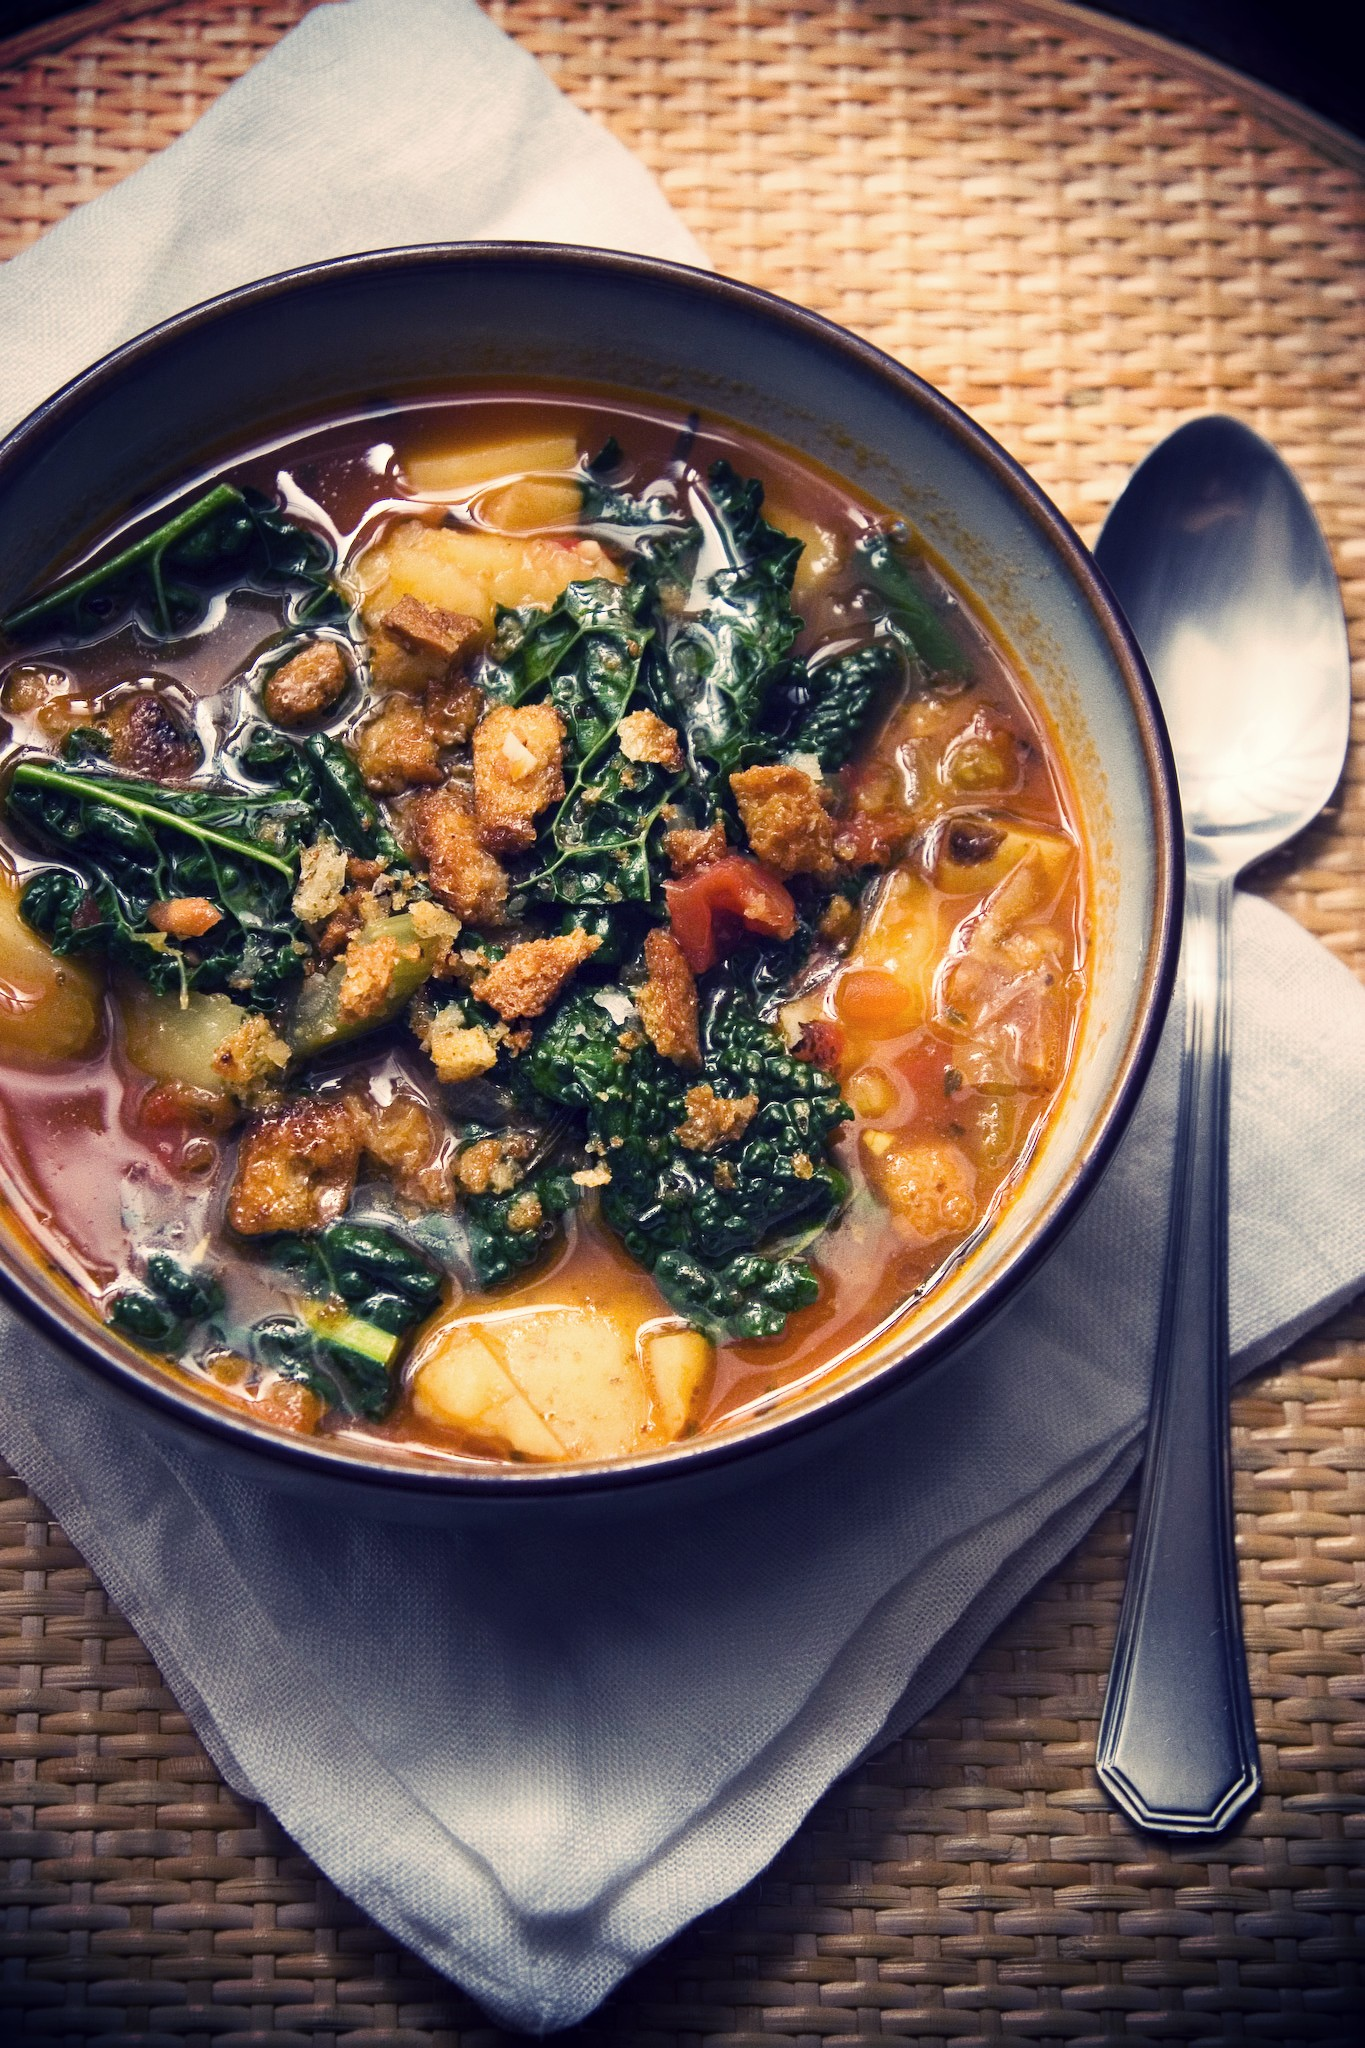 Roasted Tomato & Rosemary Soup with Kale & Potatoes